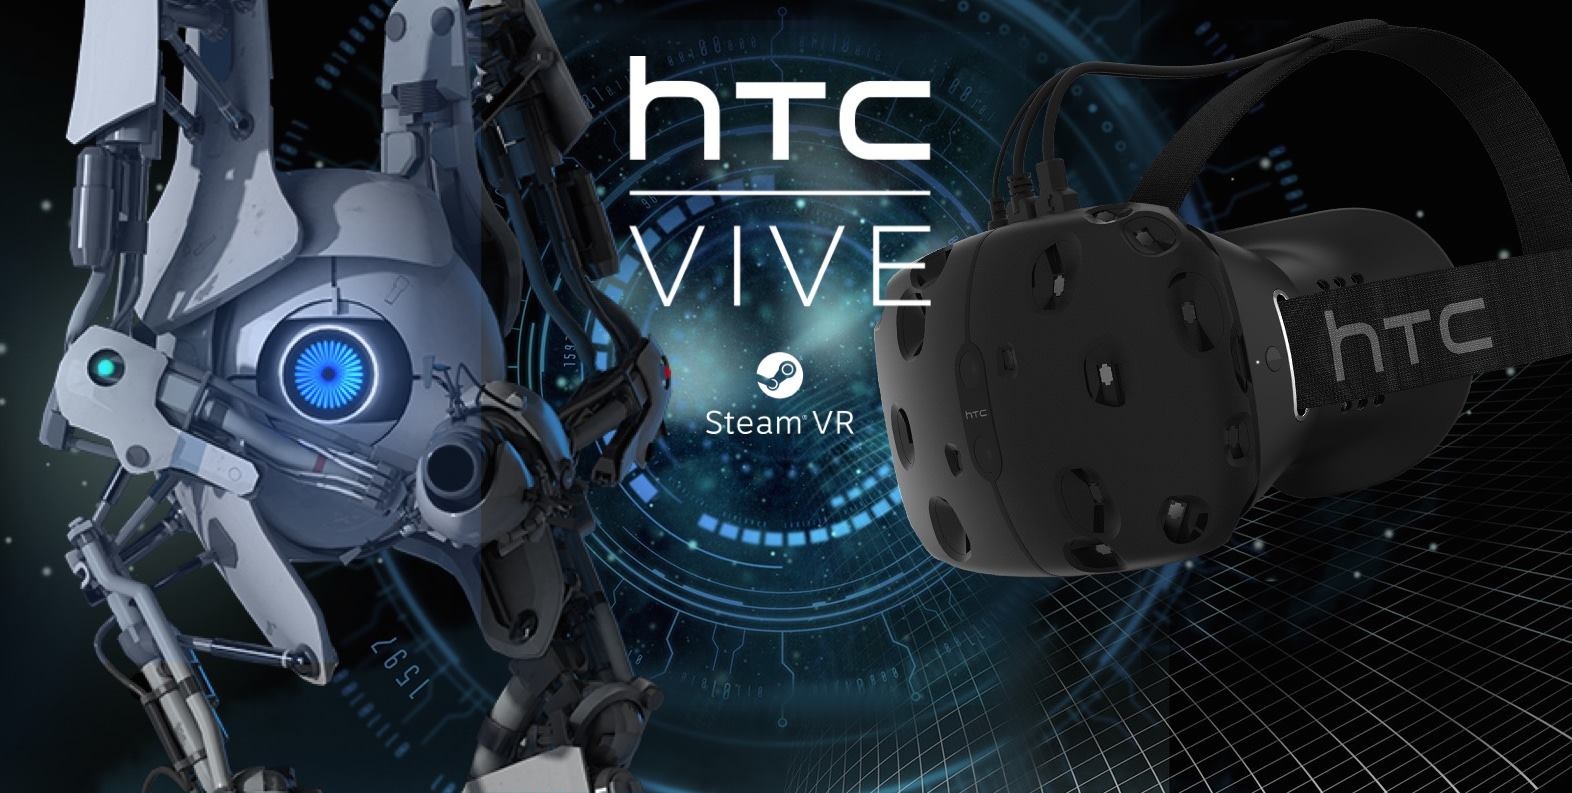 TrendForce: VR market sees marginal growth in 2018; competition between Oculus and HTC in China to intensify - EYE On Taiwan Media 印象臺灣 | Taiwan Lifestyle